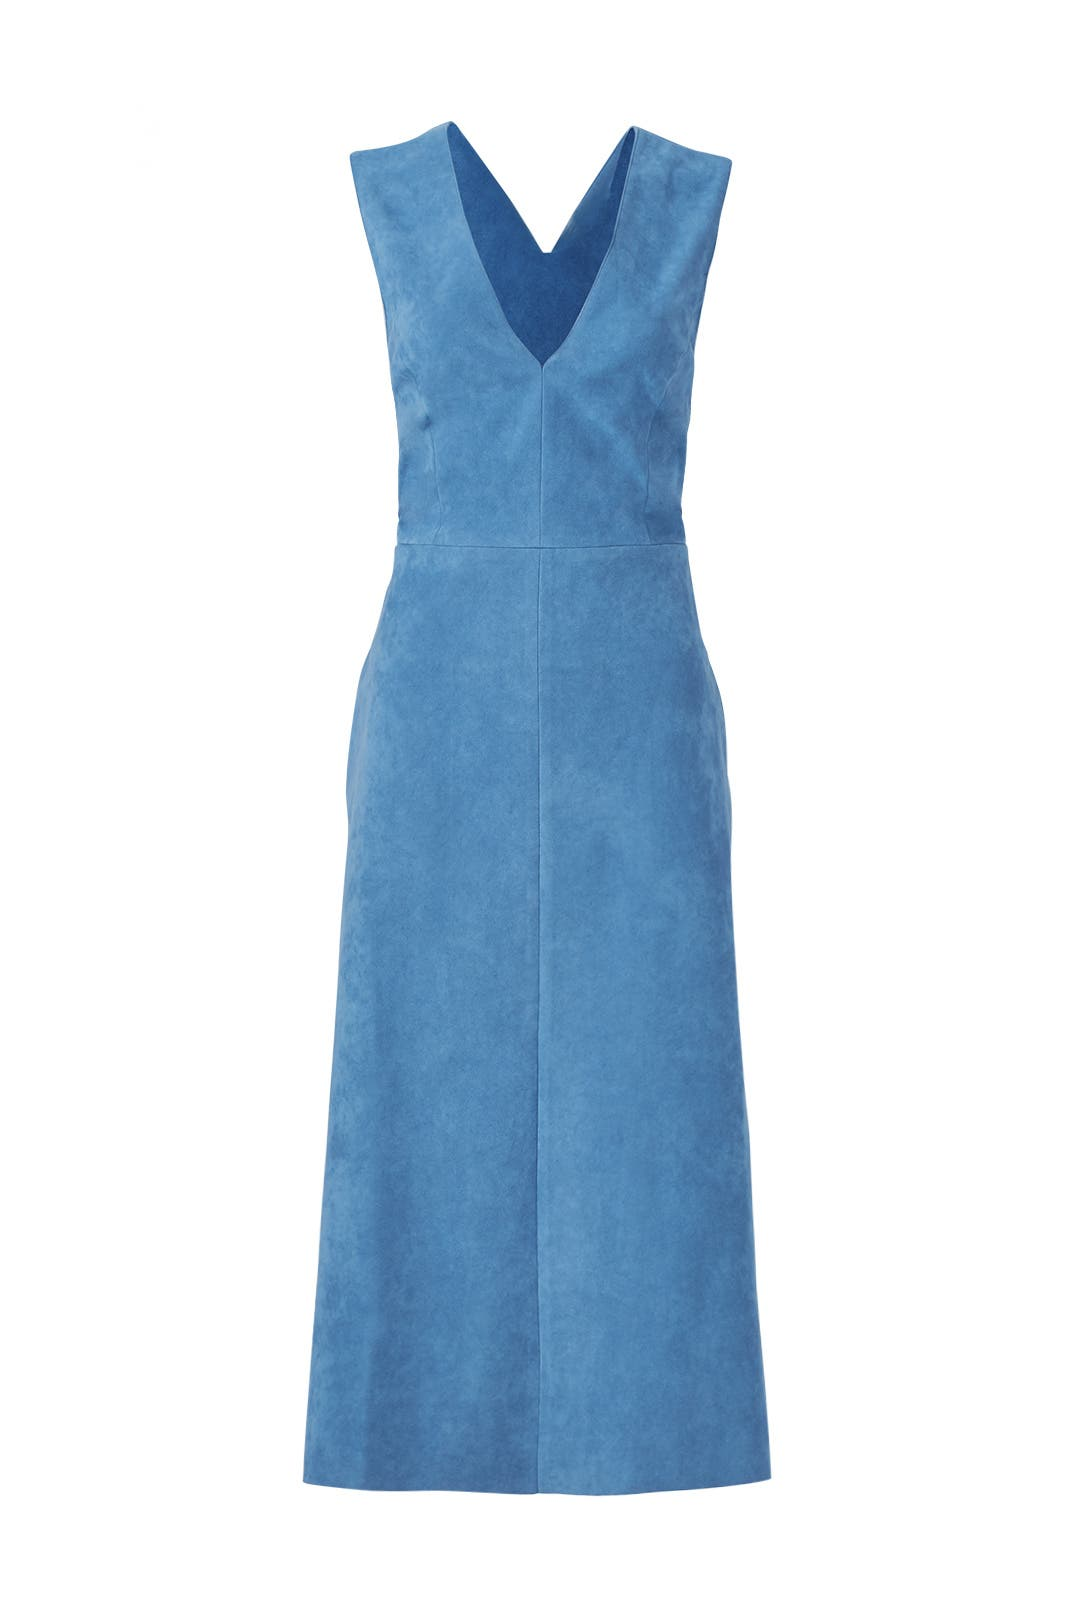 Blue Castora Dress by Tibi for $125 | Rent the Runway